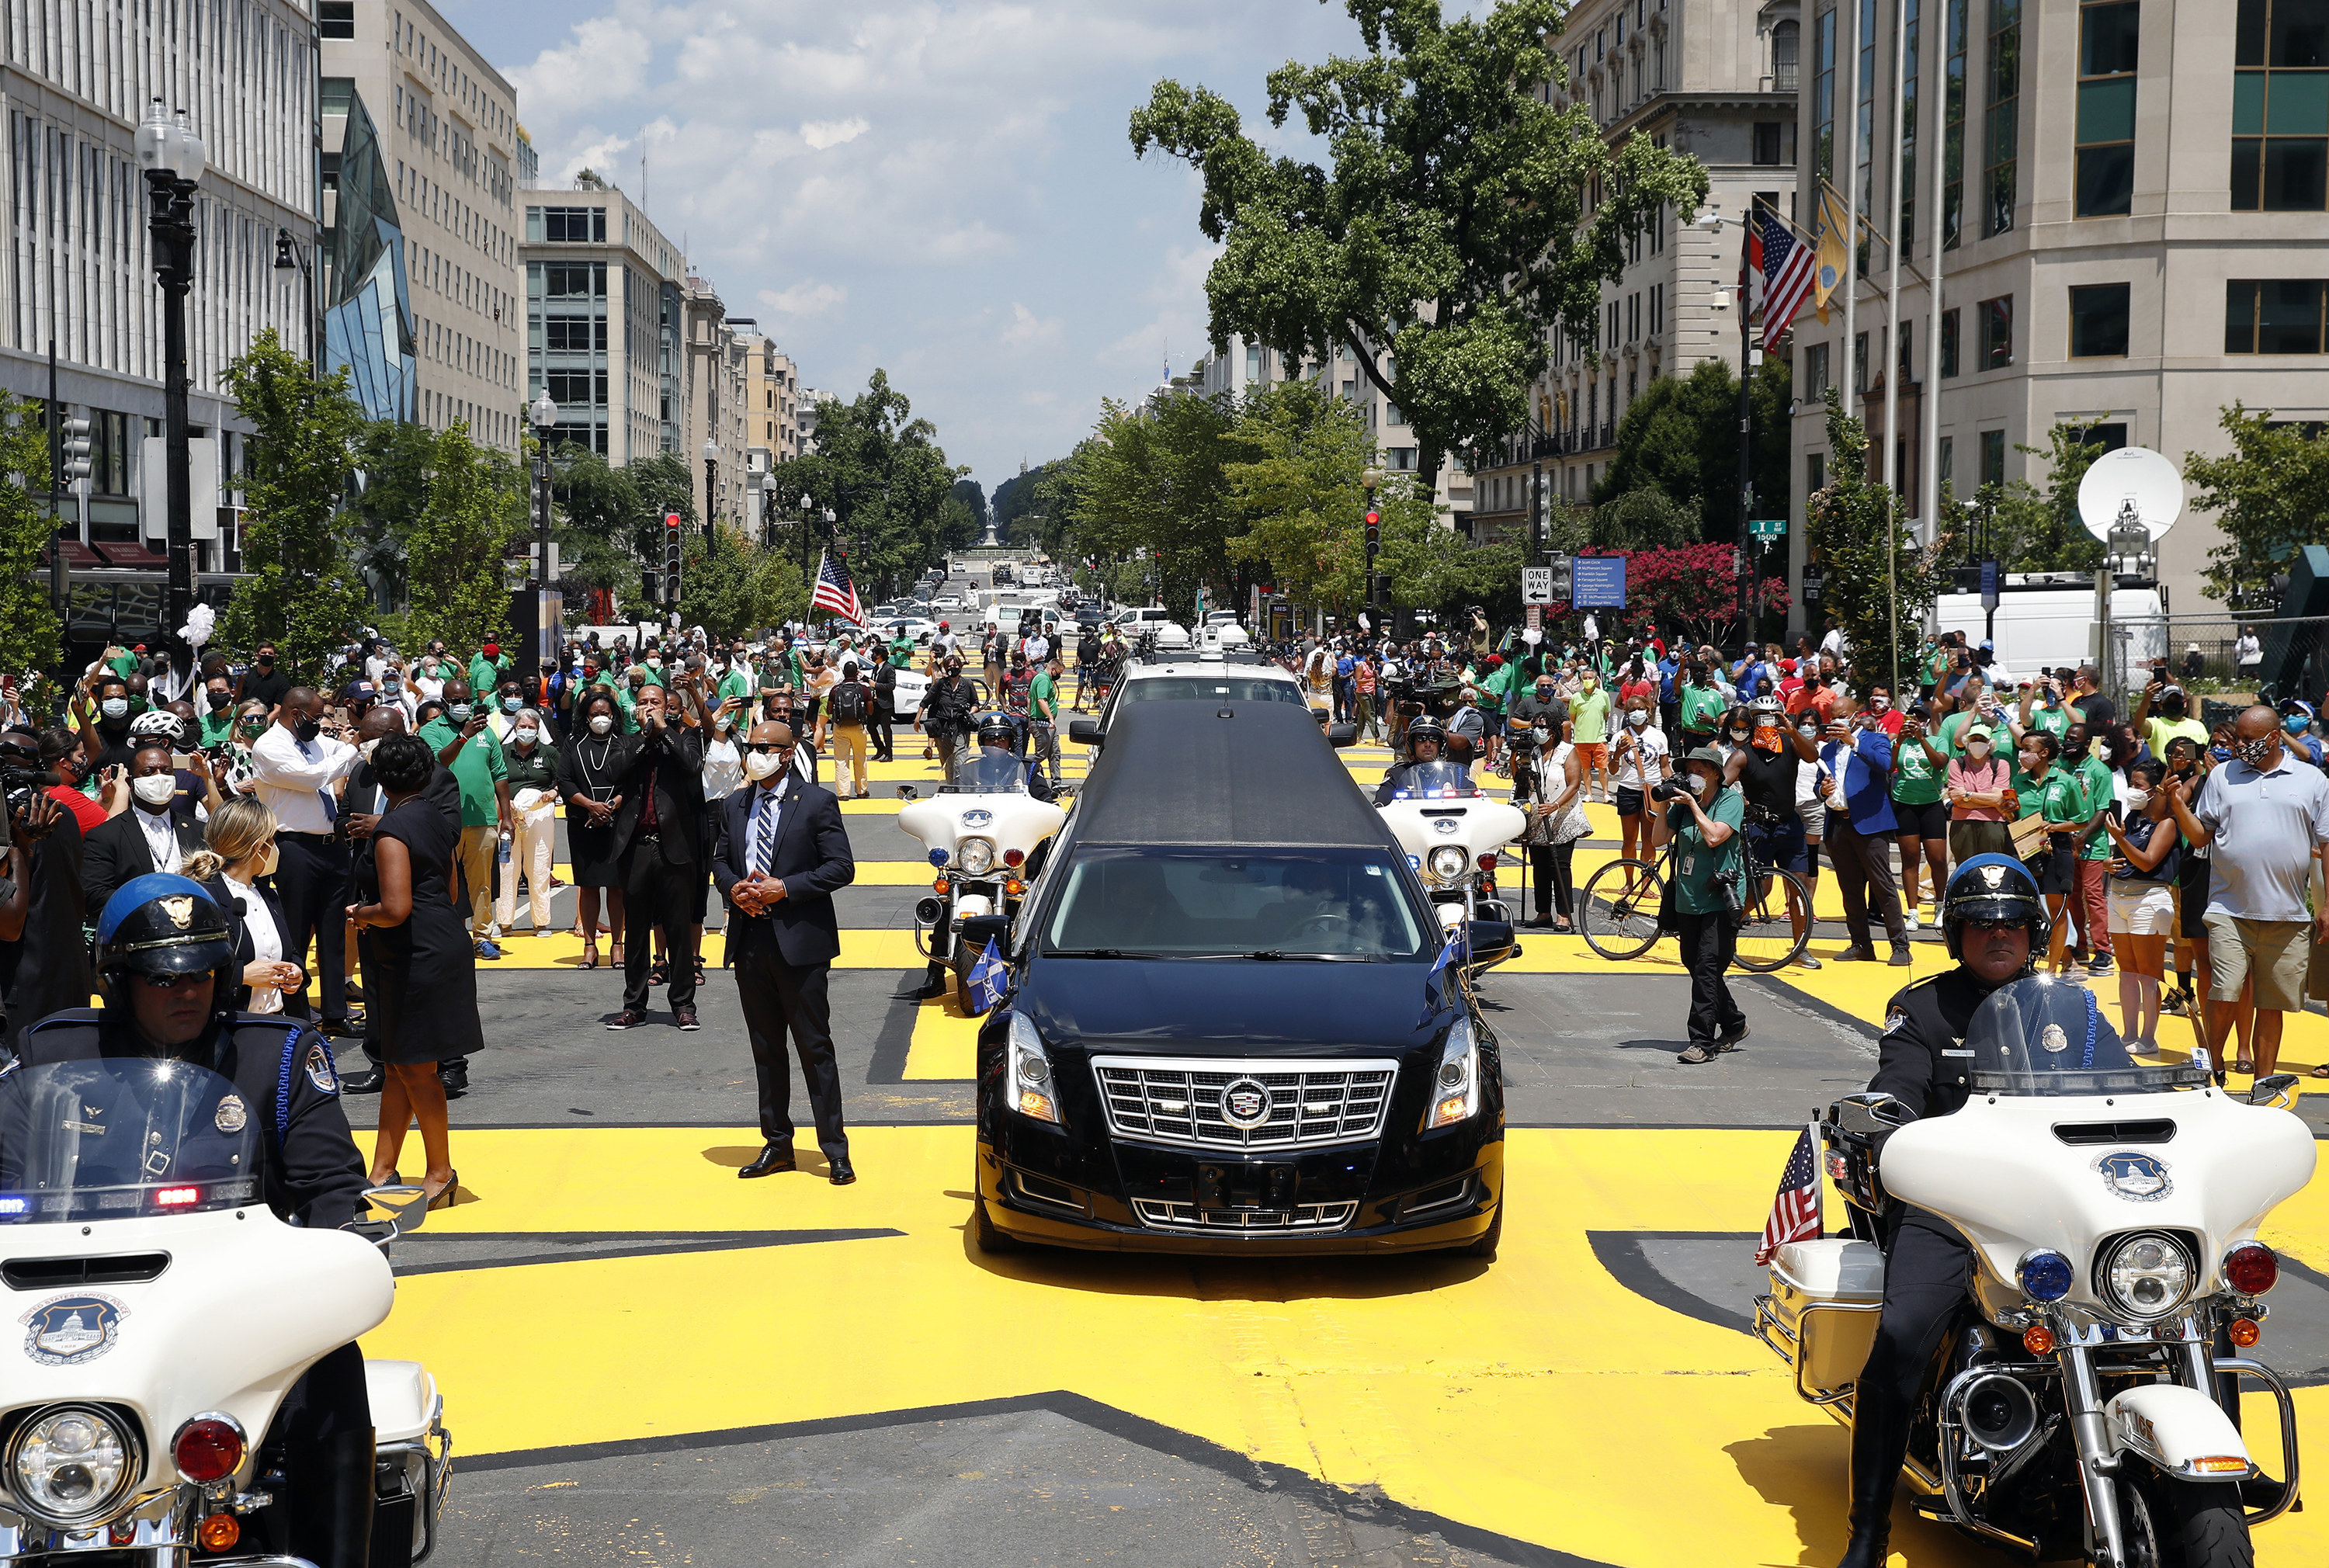 """People spill into the street to surround a motorcade, including a hearse; big yellow letters on the street spell out """"Black Lives Matter"""""""